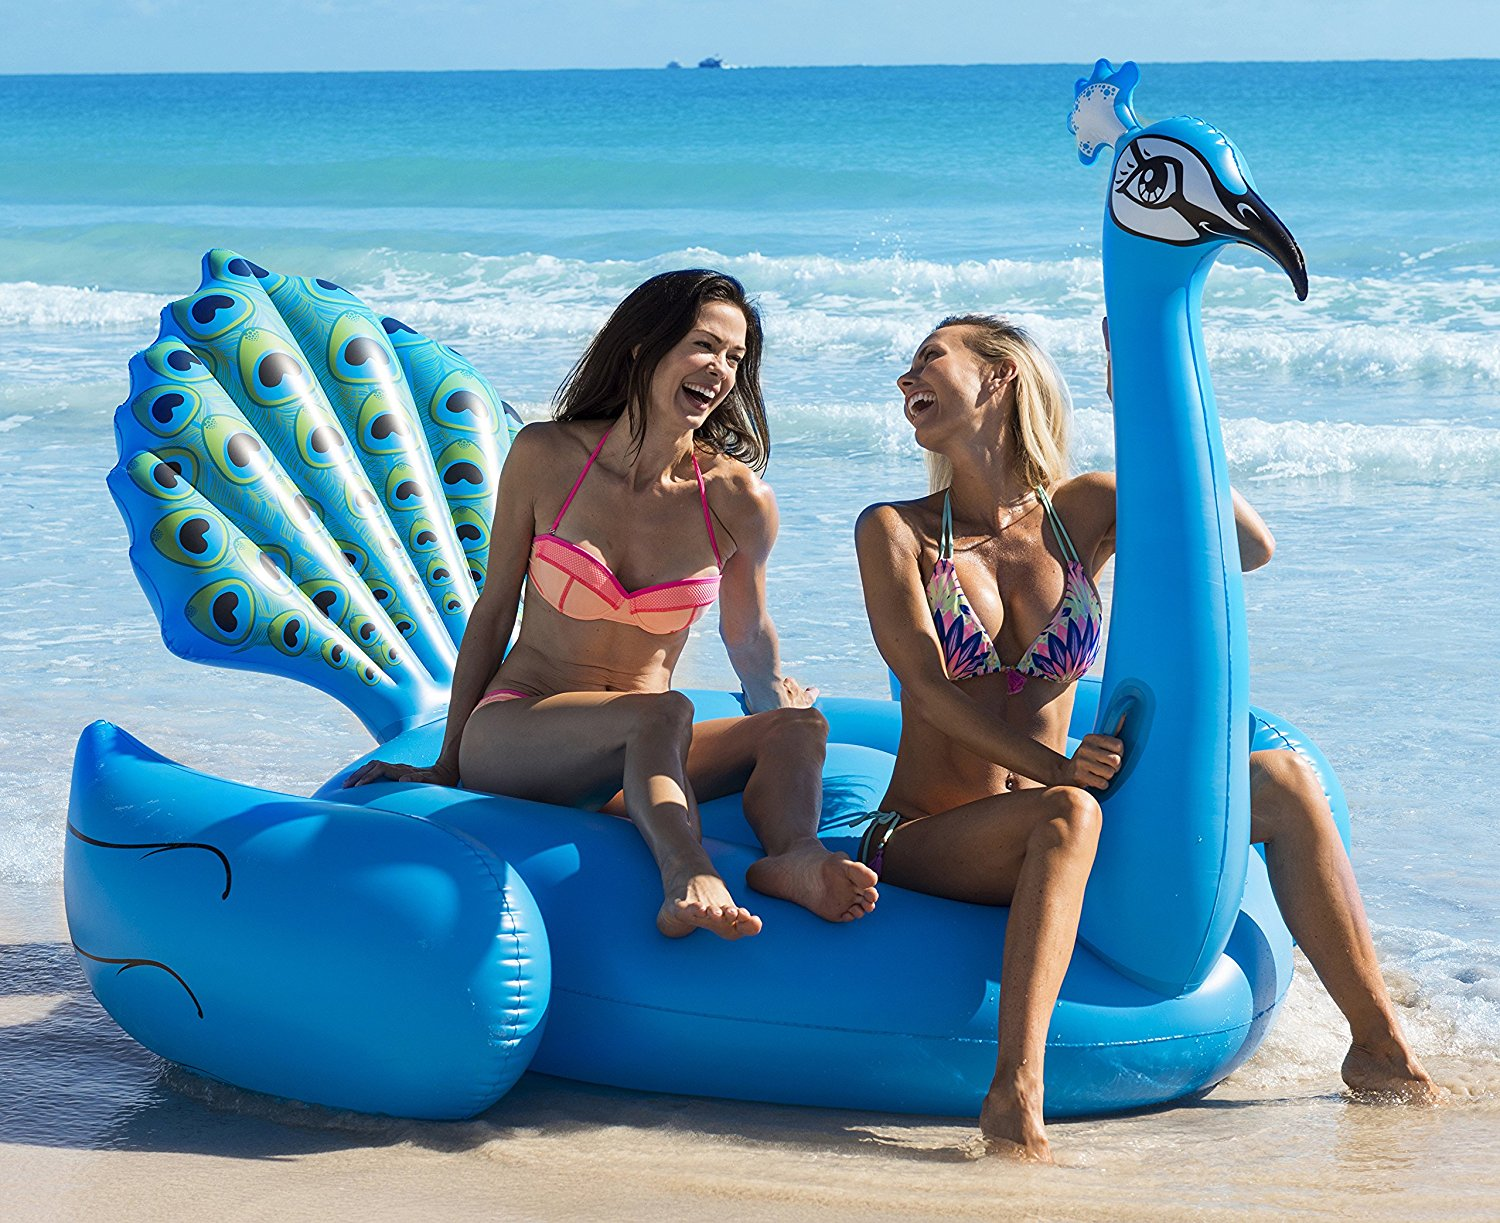 Peacock Pool Float - The most Instagram worthy Pool Floats Summer 2017